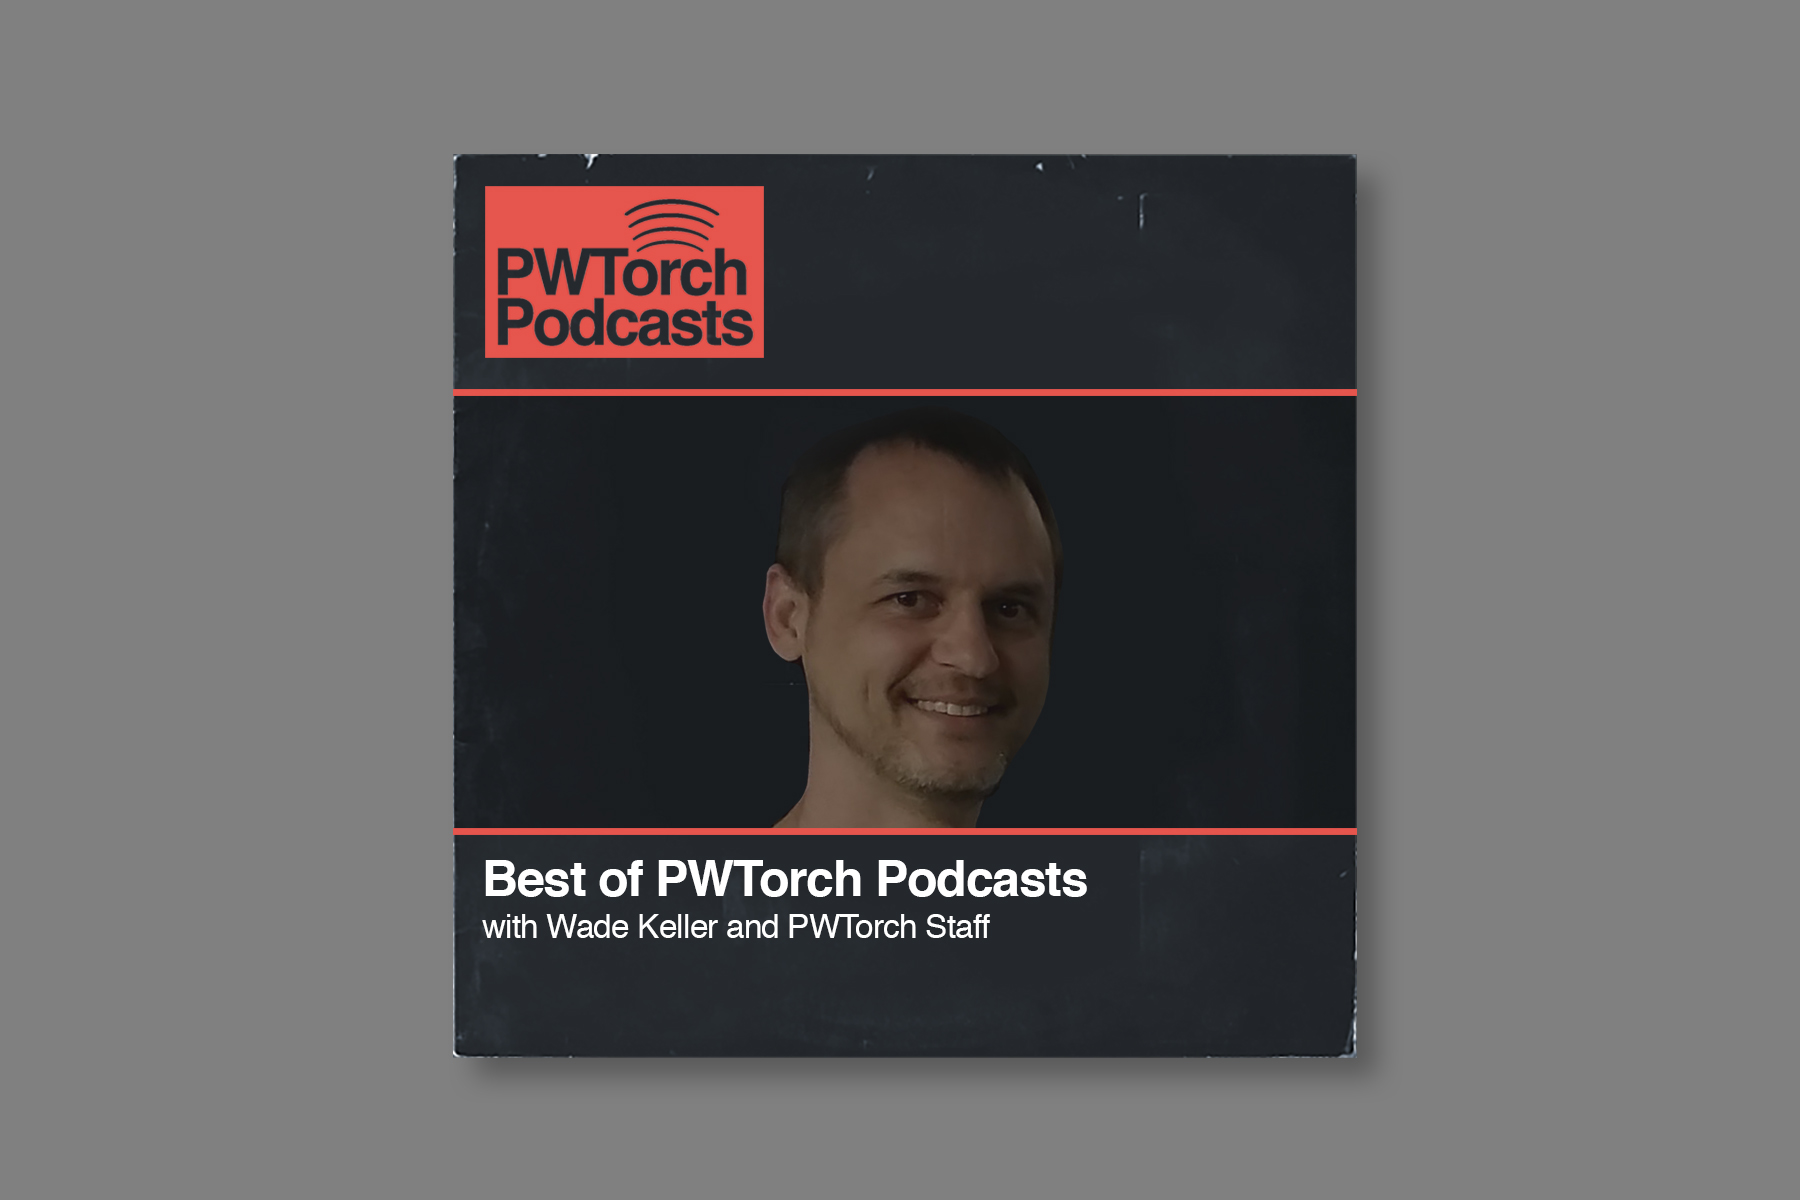 Best New Podcasts 2020 FREE PODCAST 12/28 – Best of PWTorch Podcasts – Year in Review